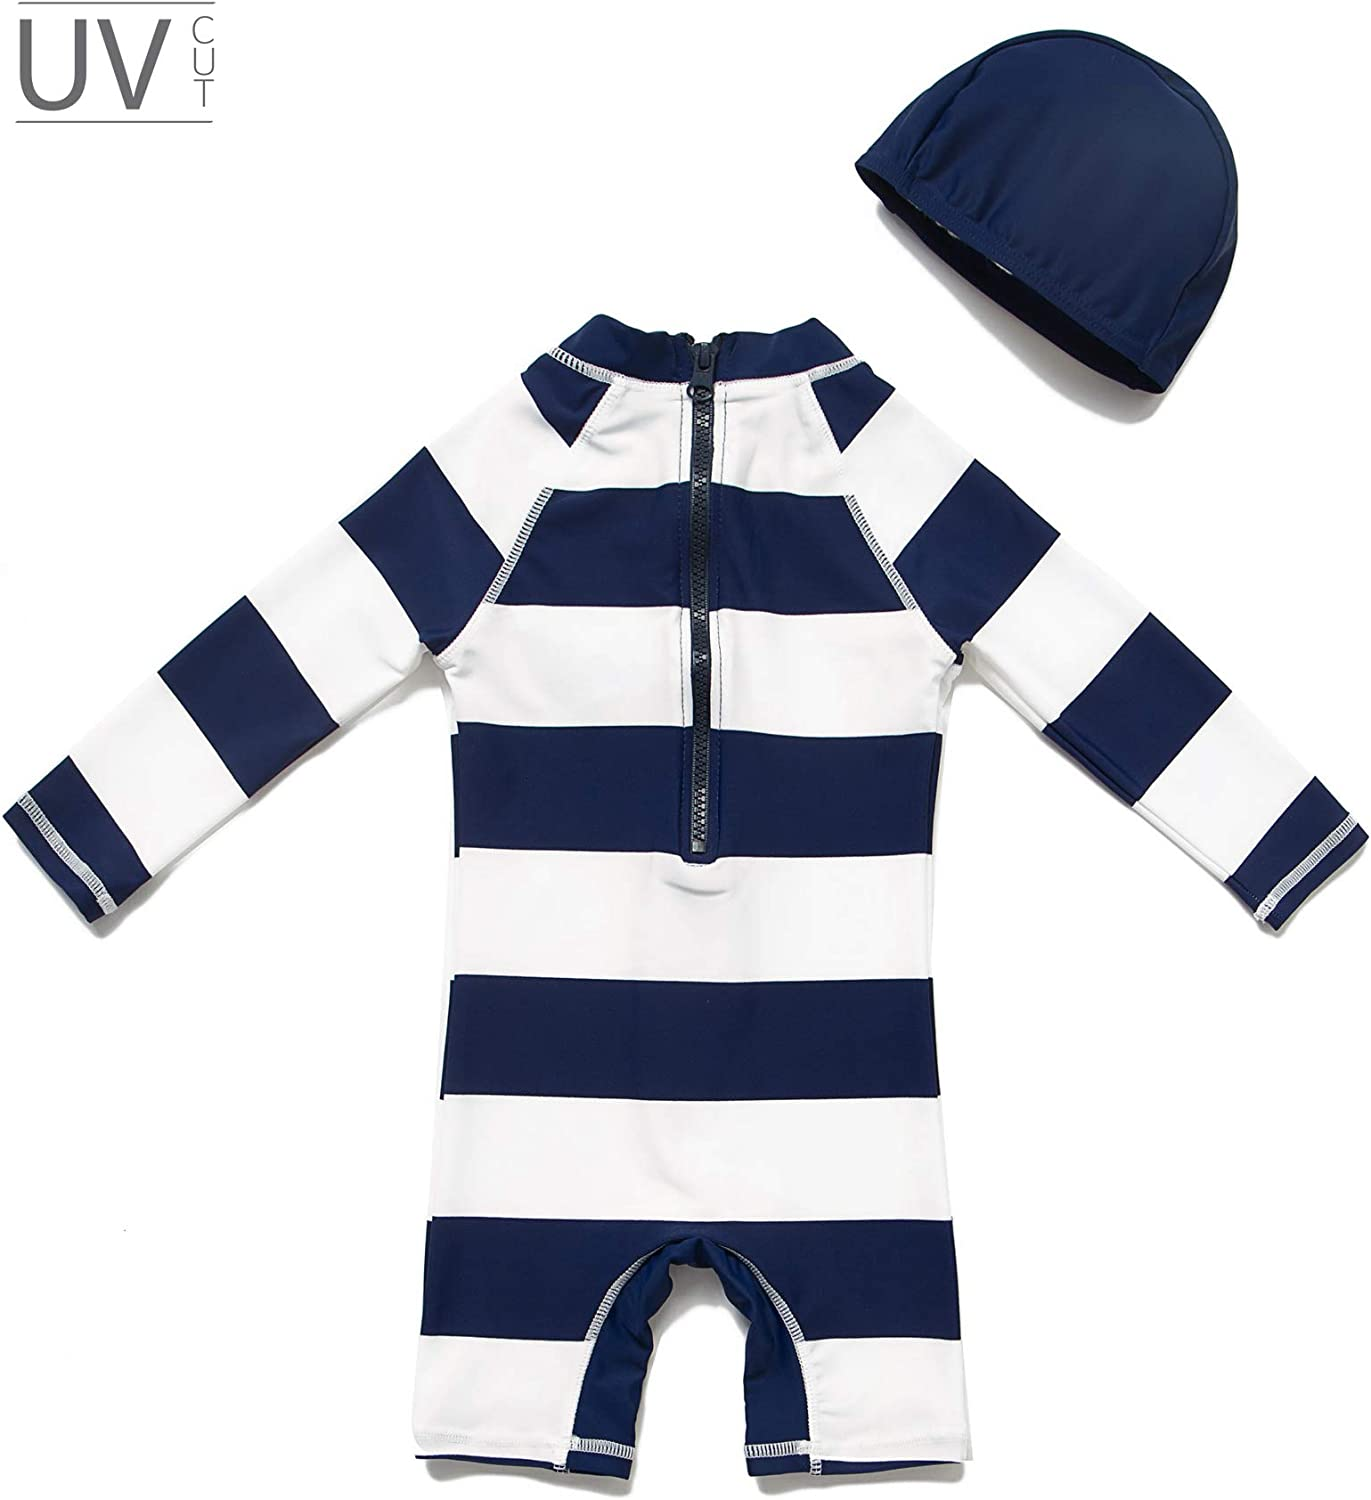 All in One Baby Boy Swimsuit One Piece UPF 50 Sun Protective Sunsuit with Sun Hat